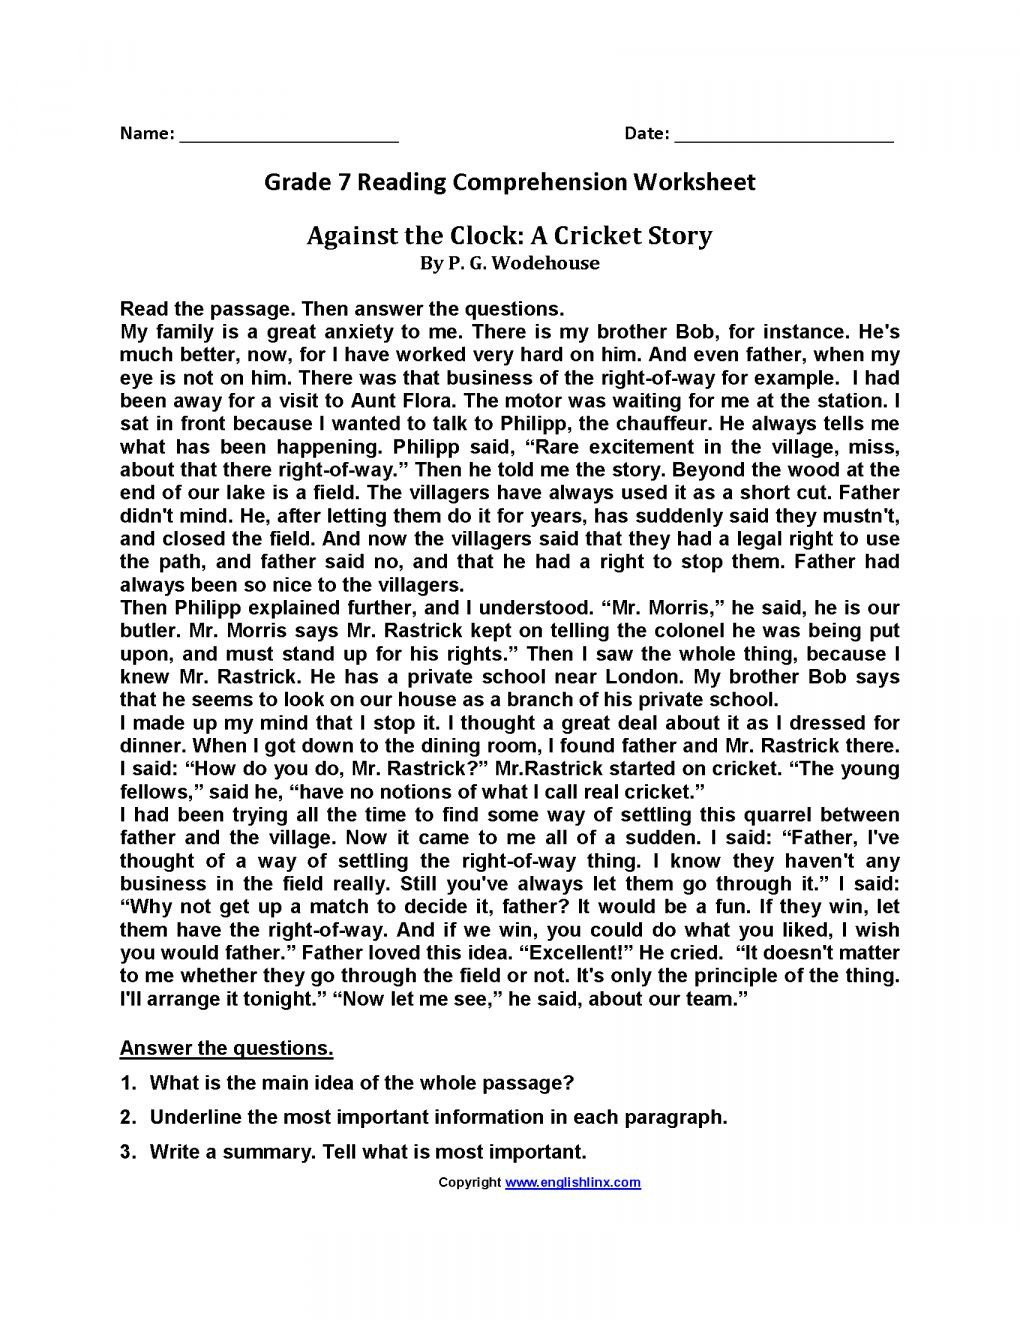 Reading Comprehension Worksheets 7th Grade 10 Reading Prehension Grade 7 Worksheet